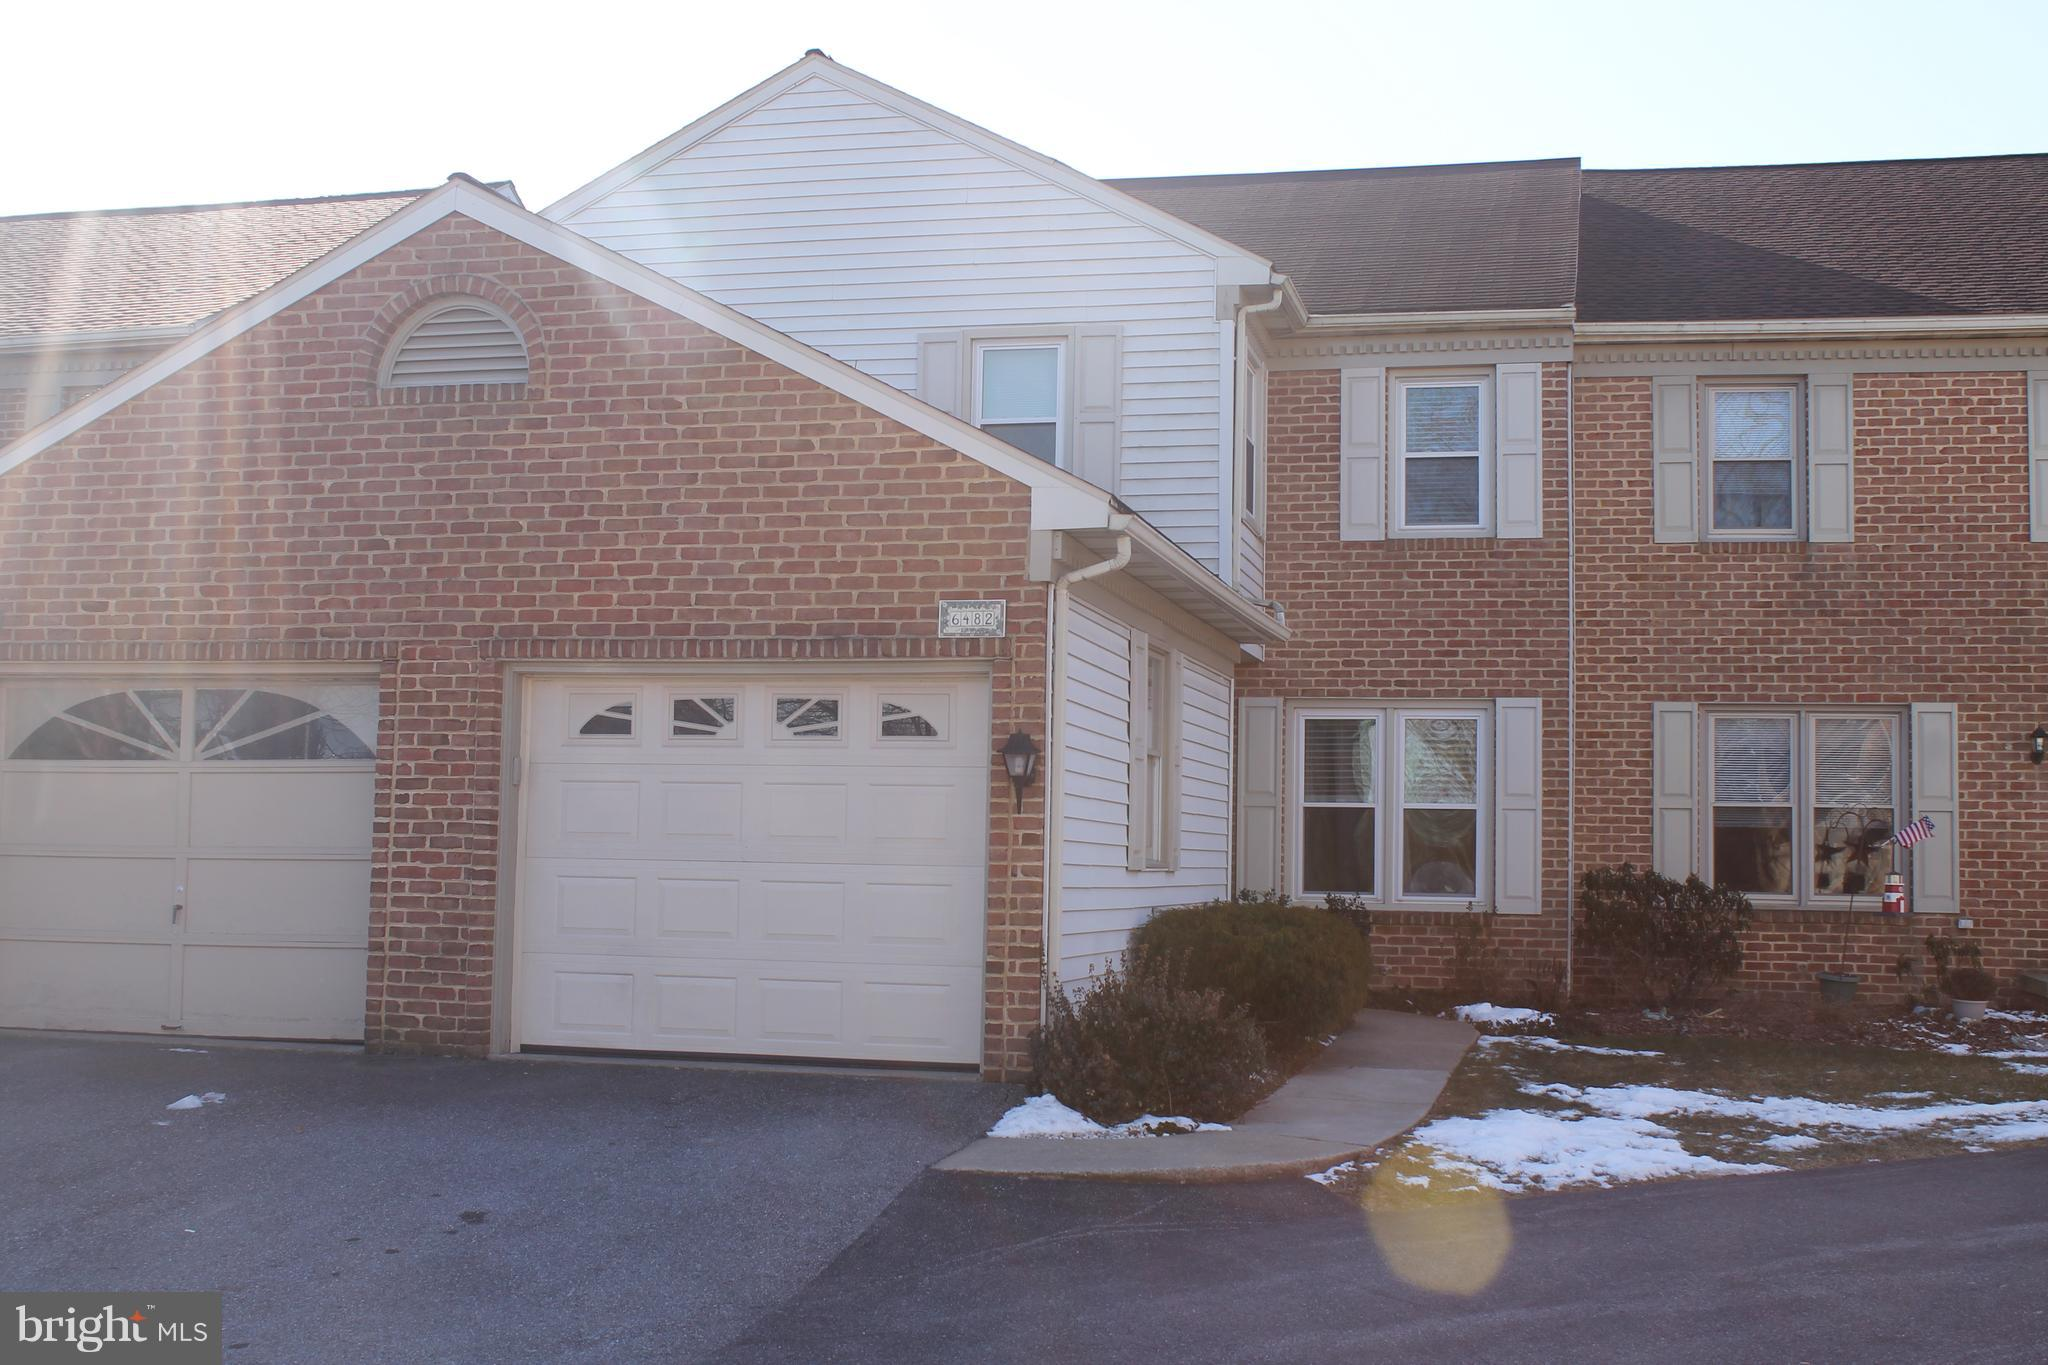 6482 LINCOLN COURT, EAST PETERSBURG, PA 17520